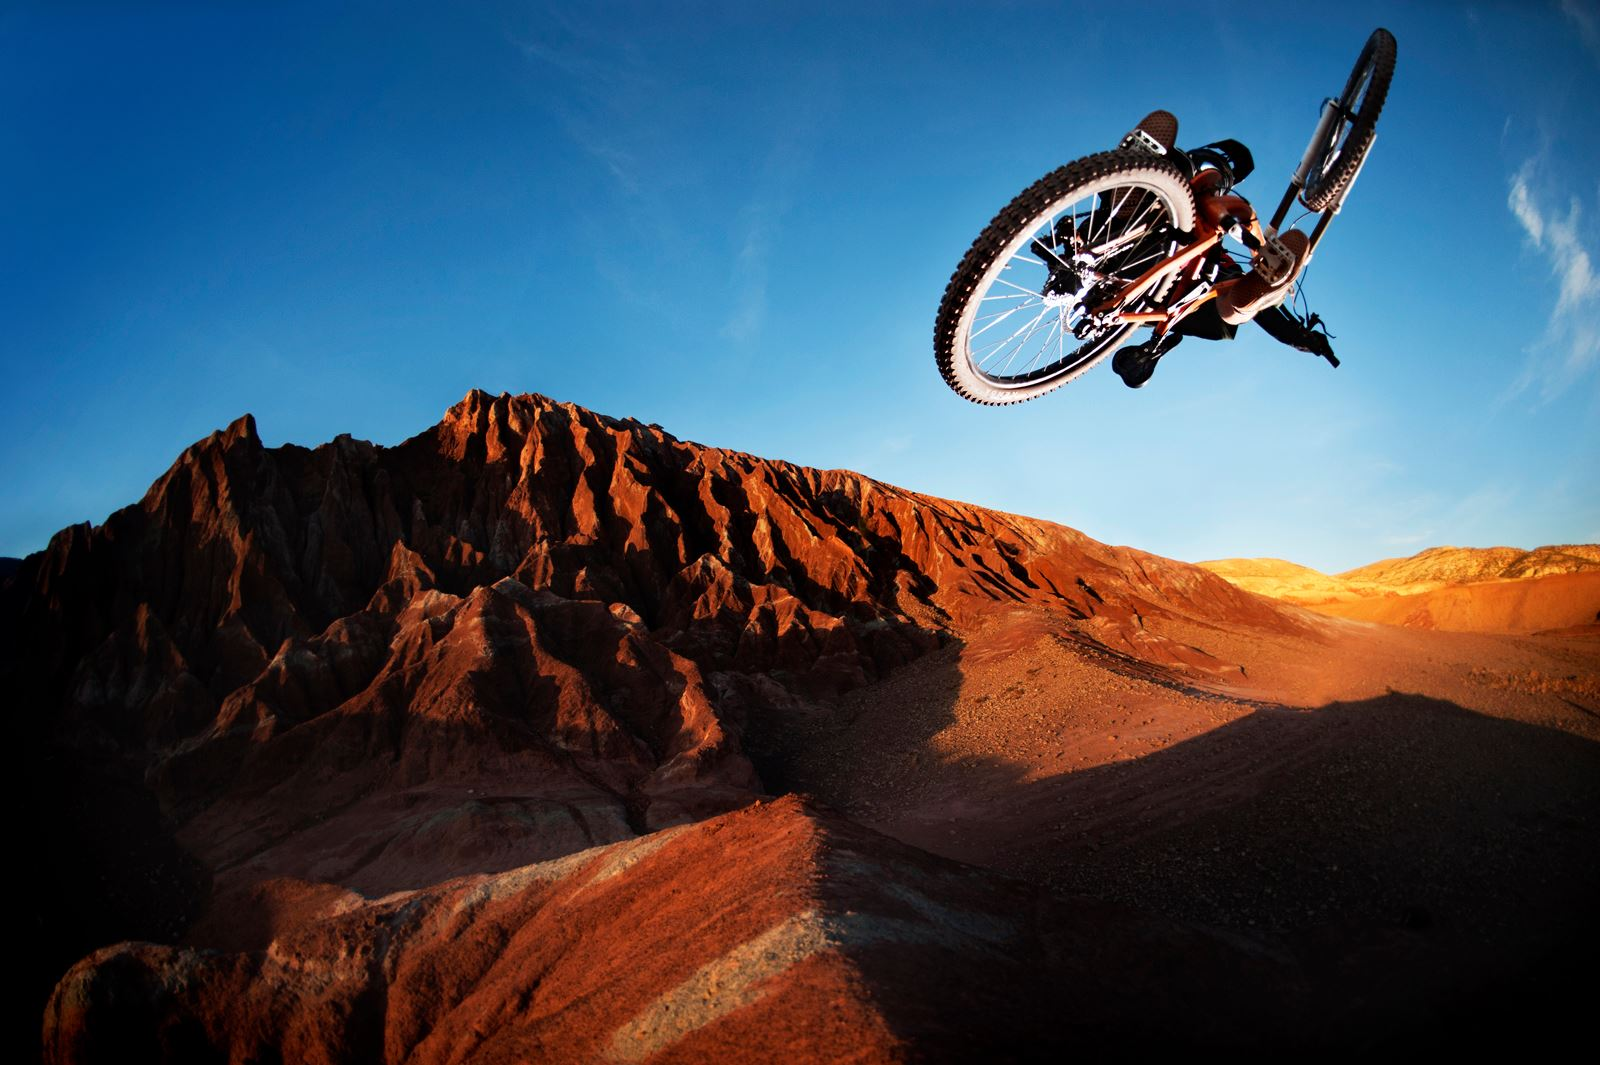 full-length-mountainbike-video-free